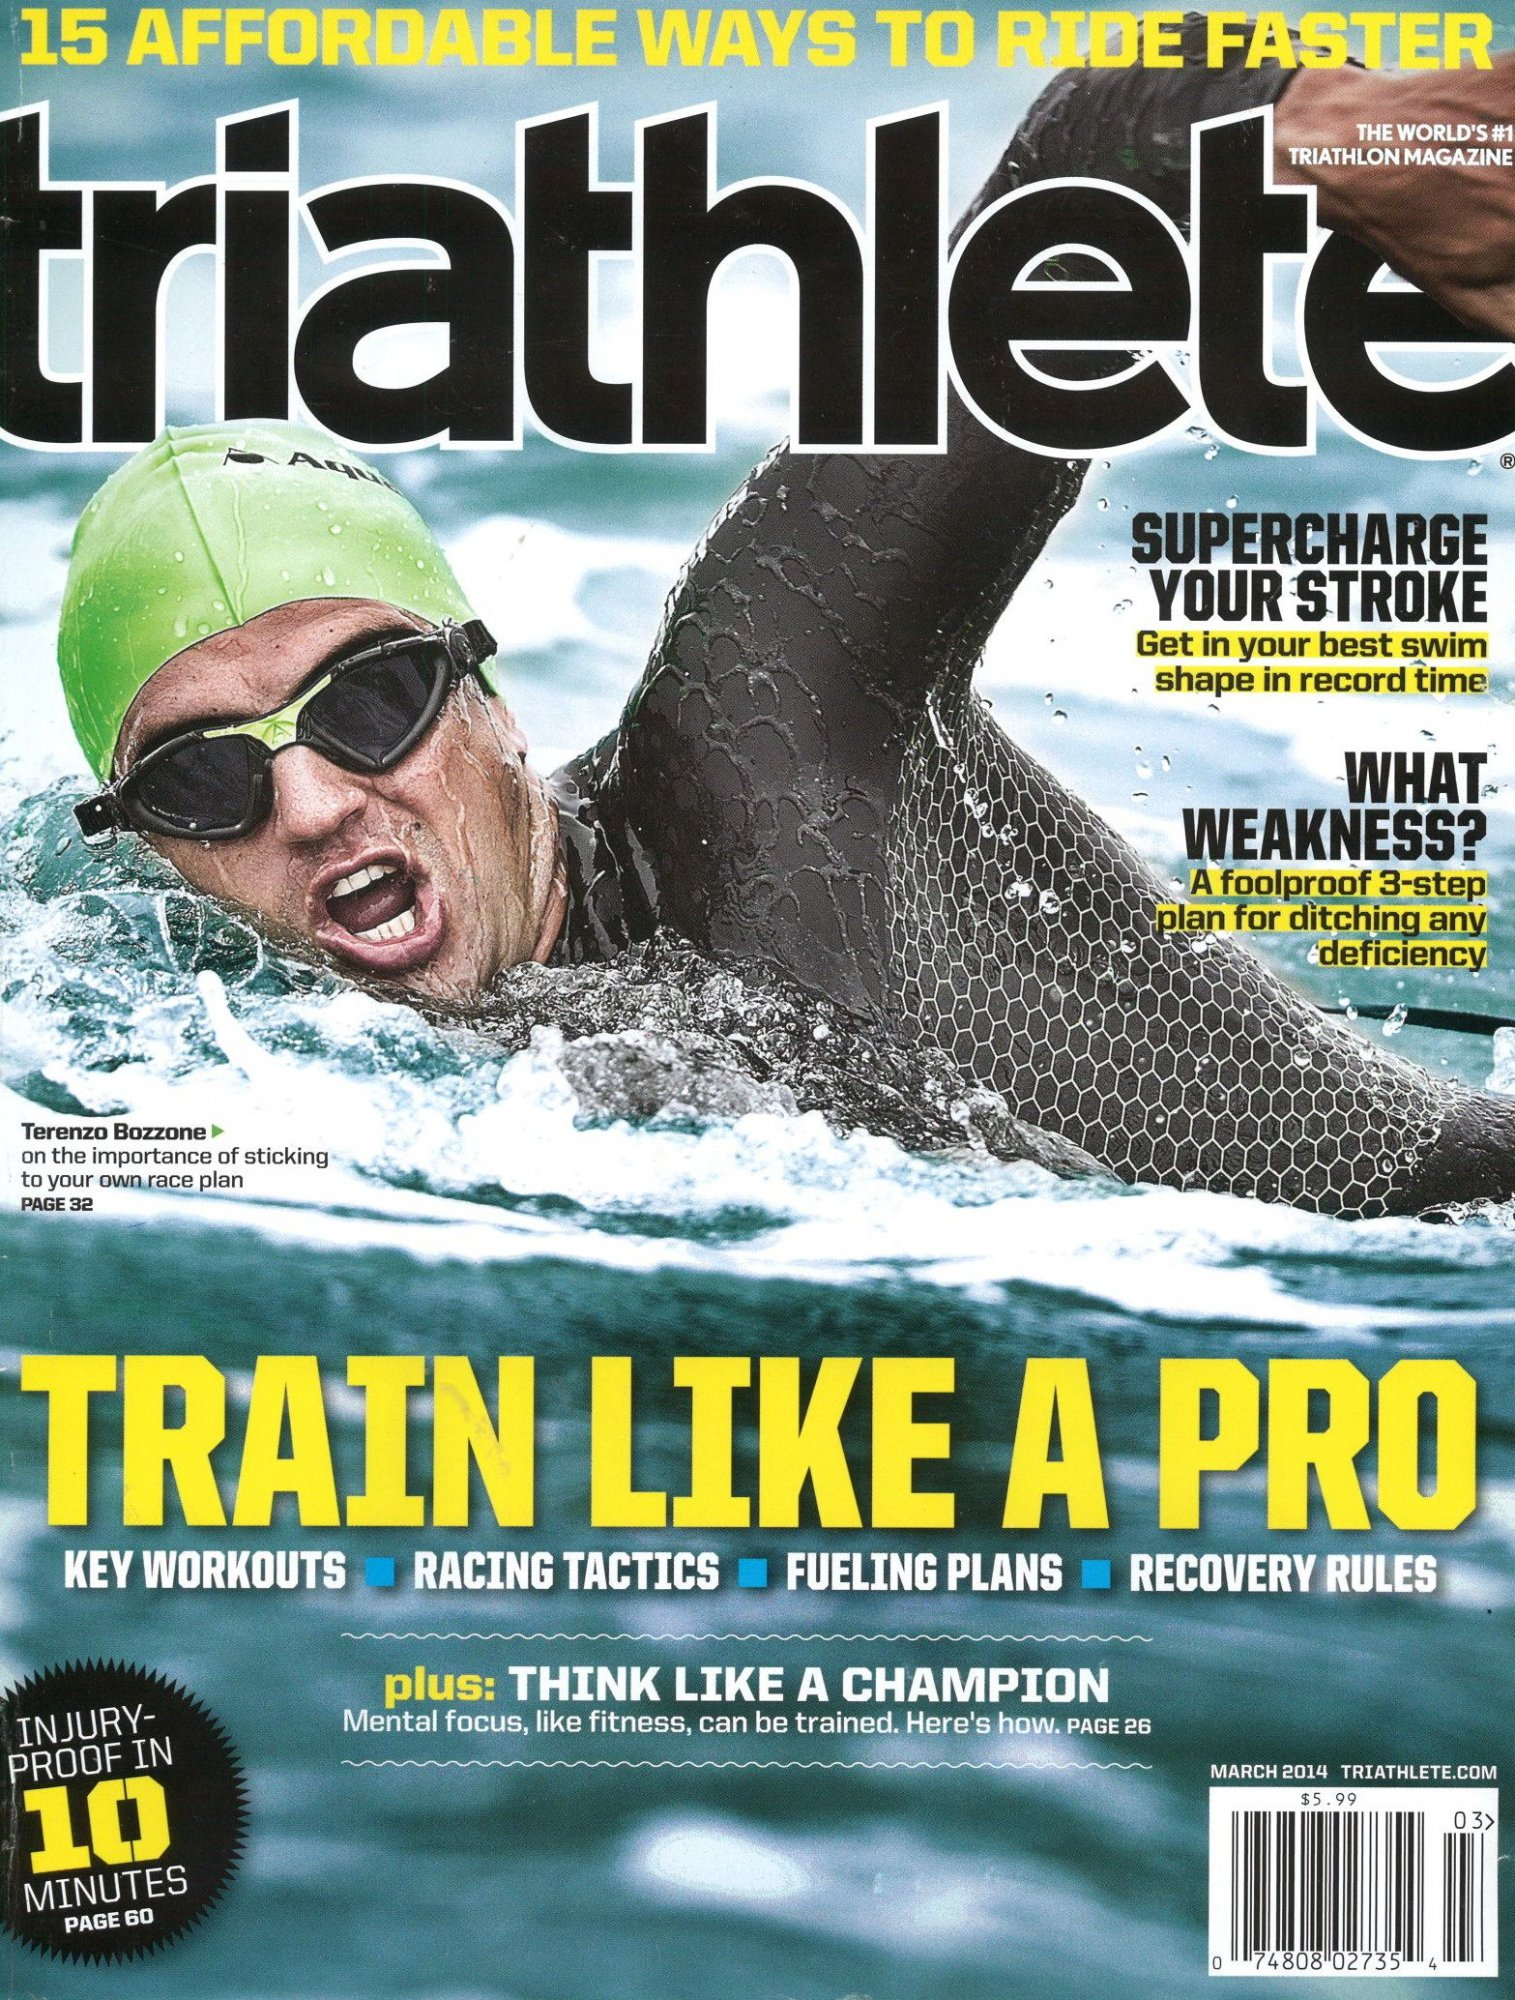 March 2014 Triathlete Cover